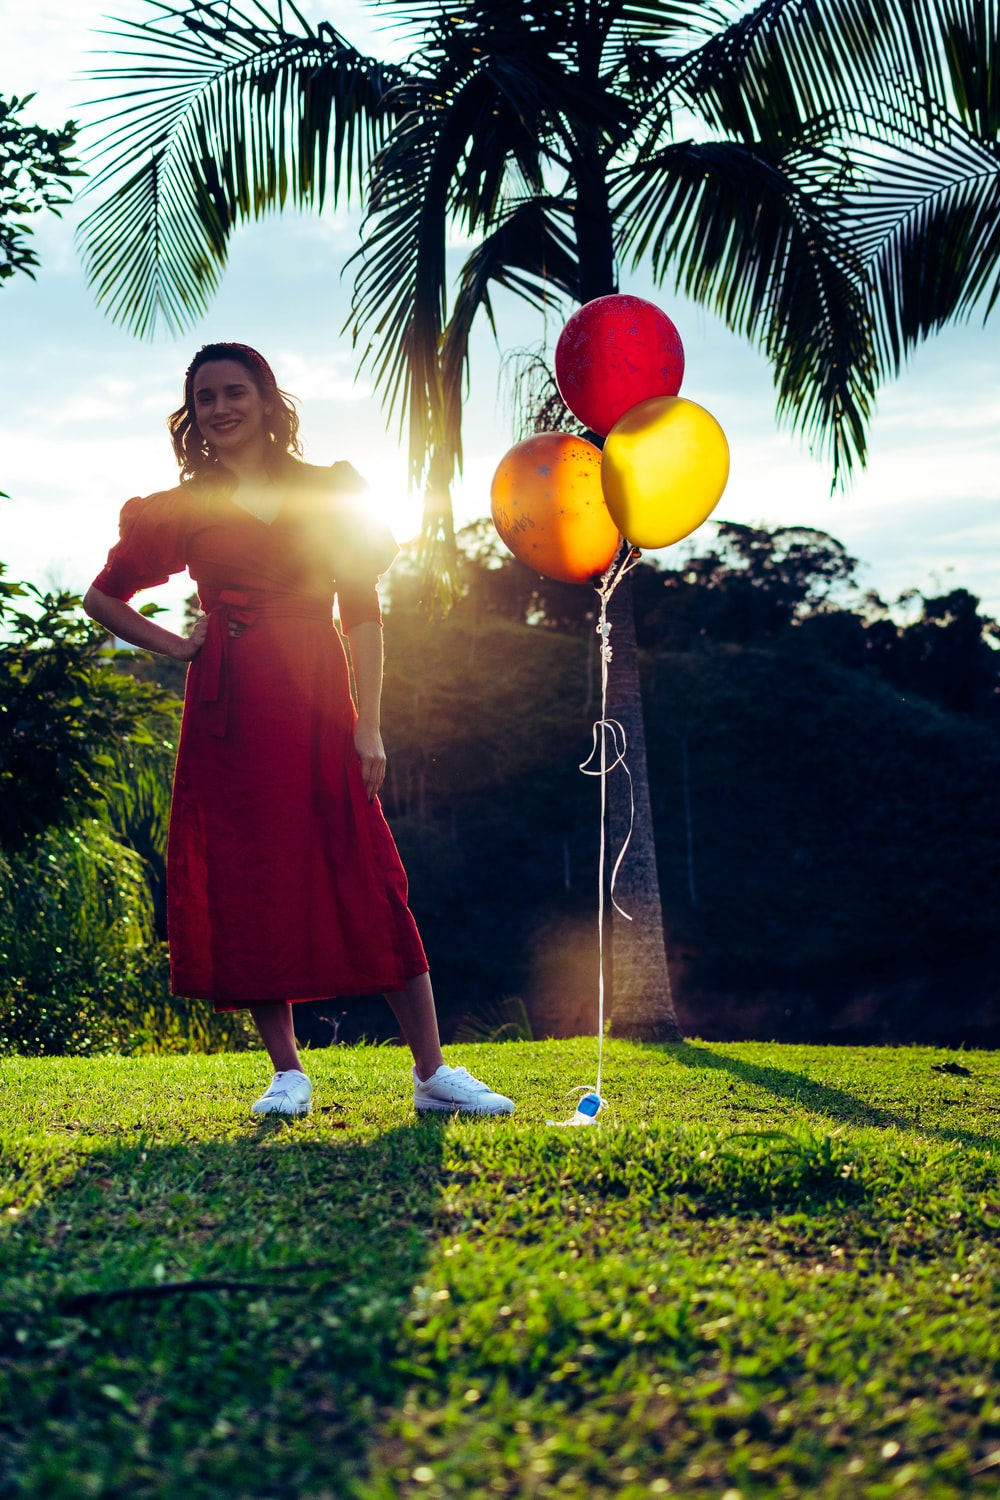 woman in red dress holding yellow balloons